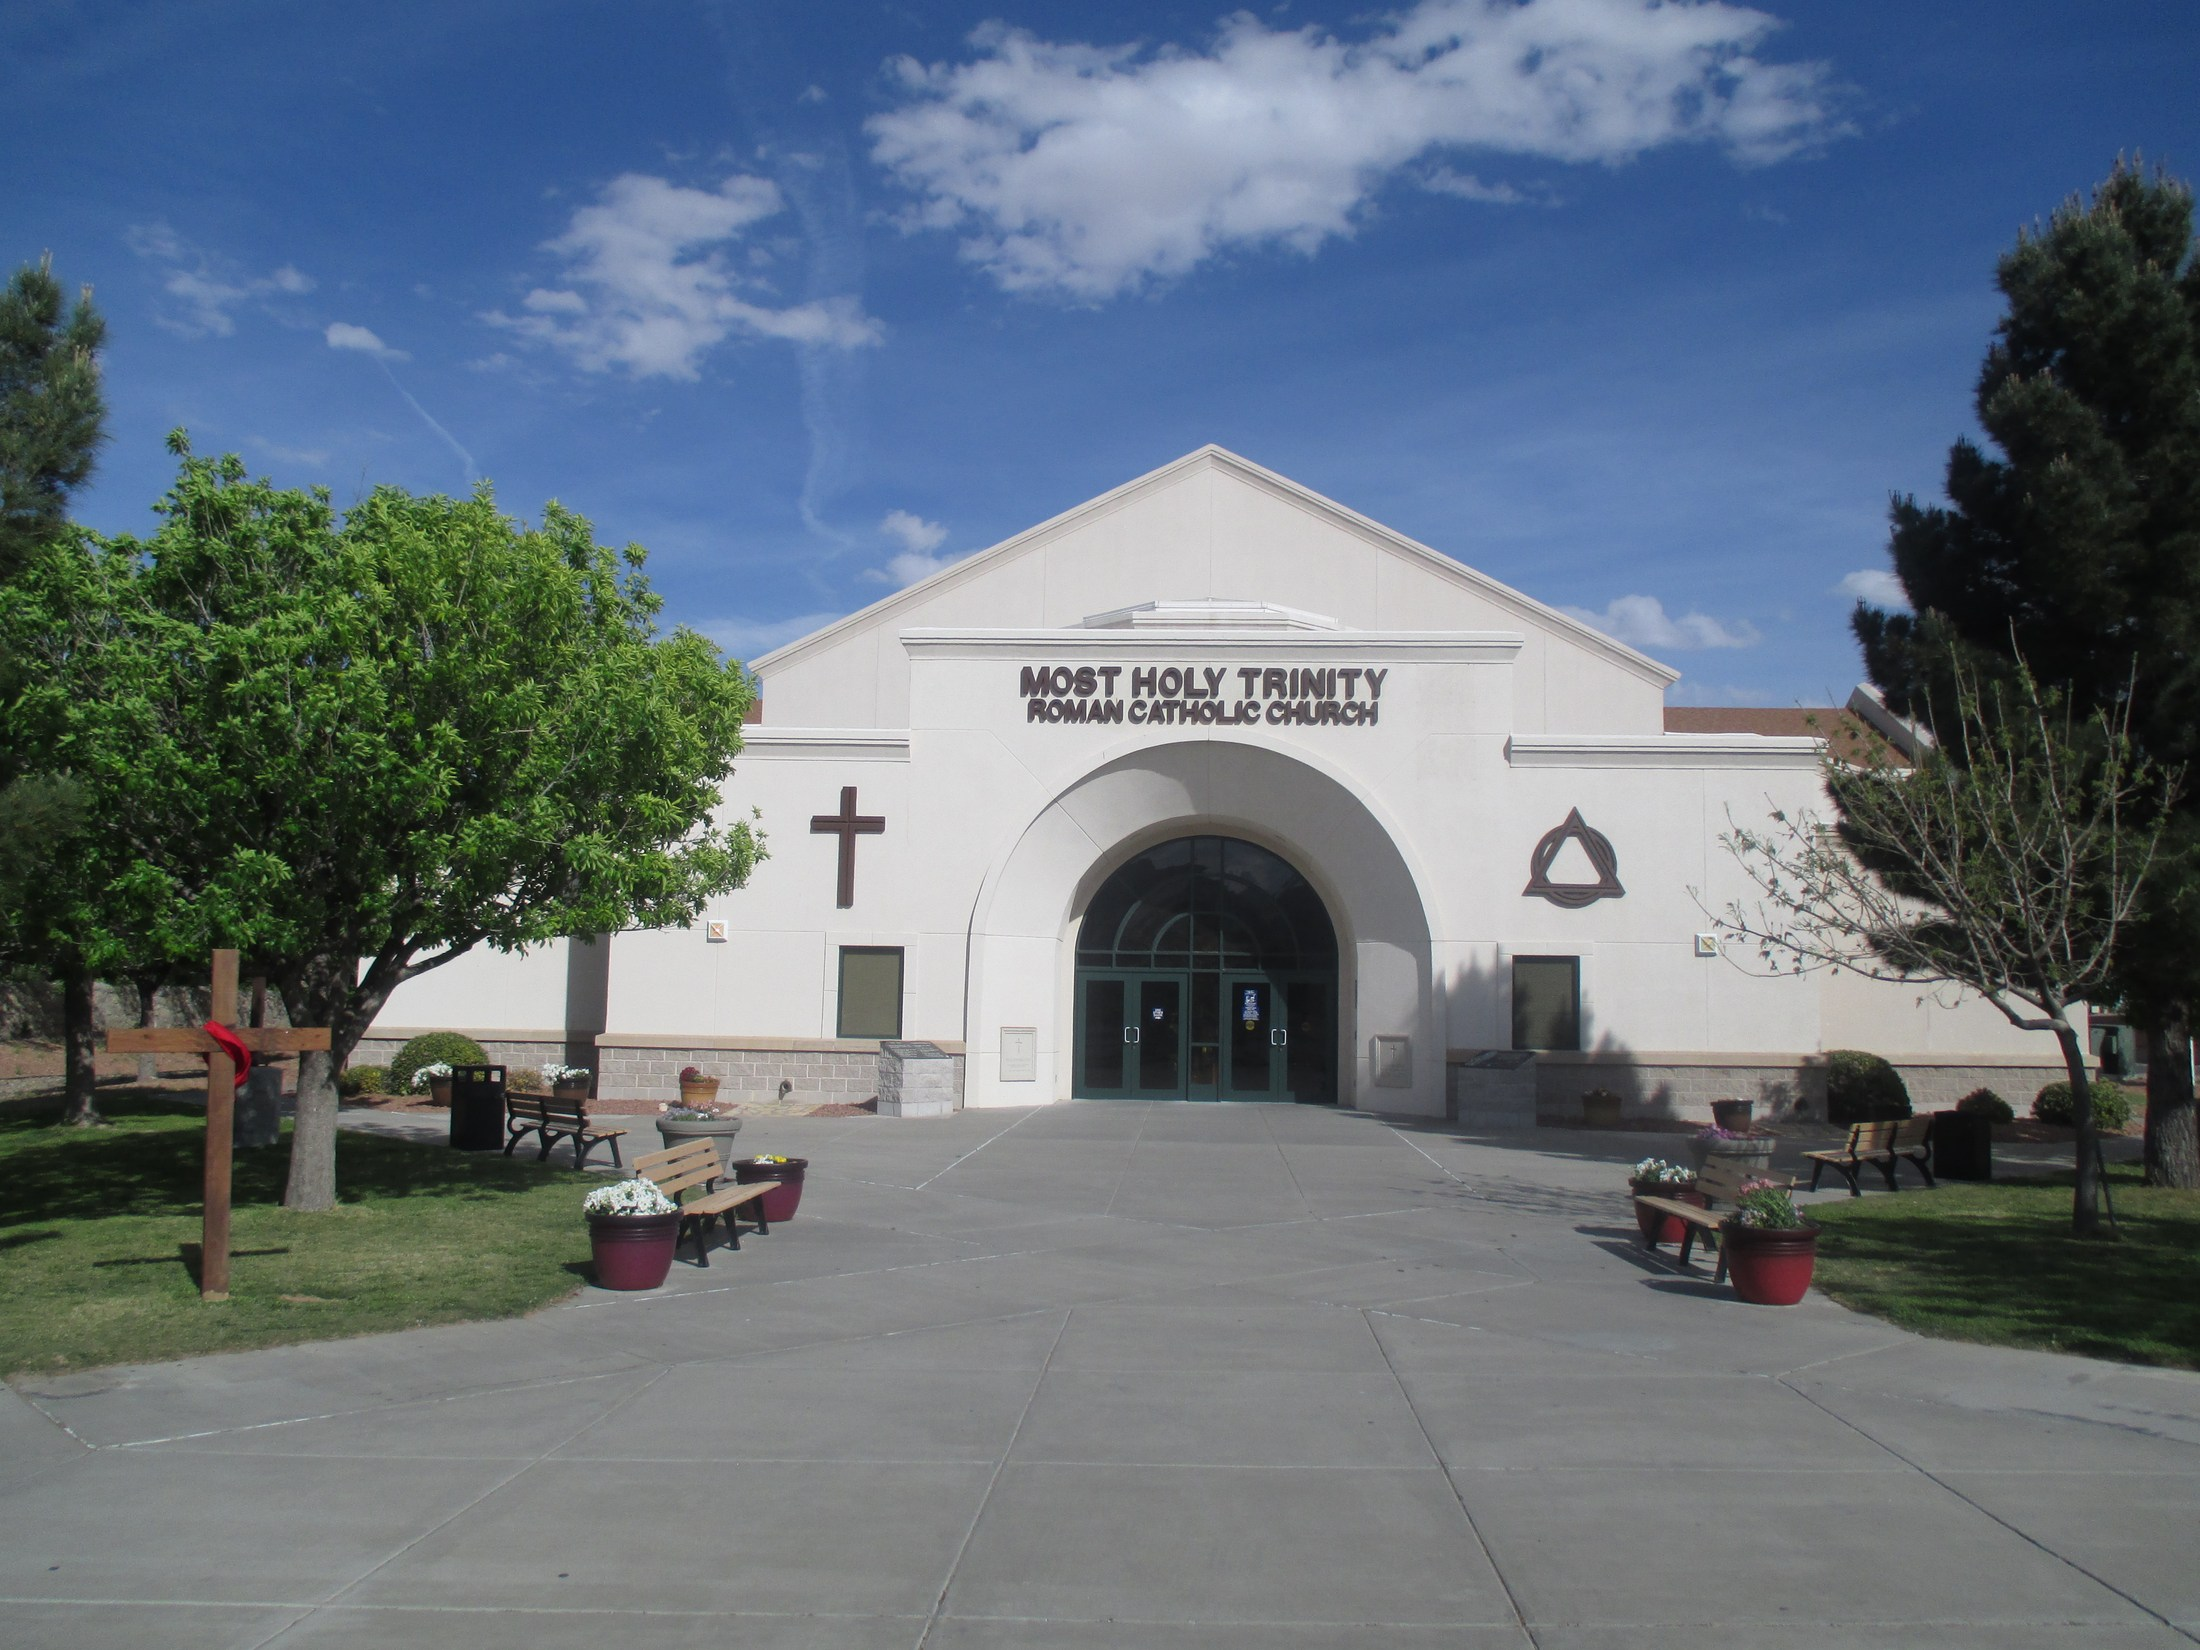 Most Holy Trinity Parish – About Us – Most Holy Trinity